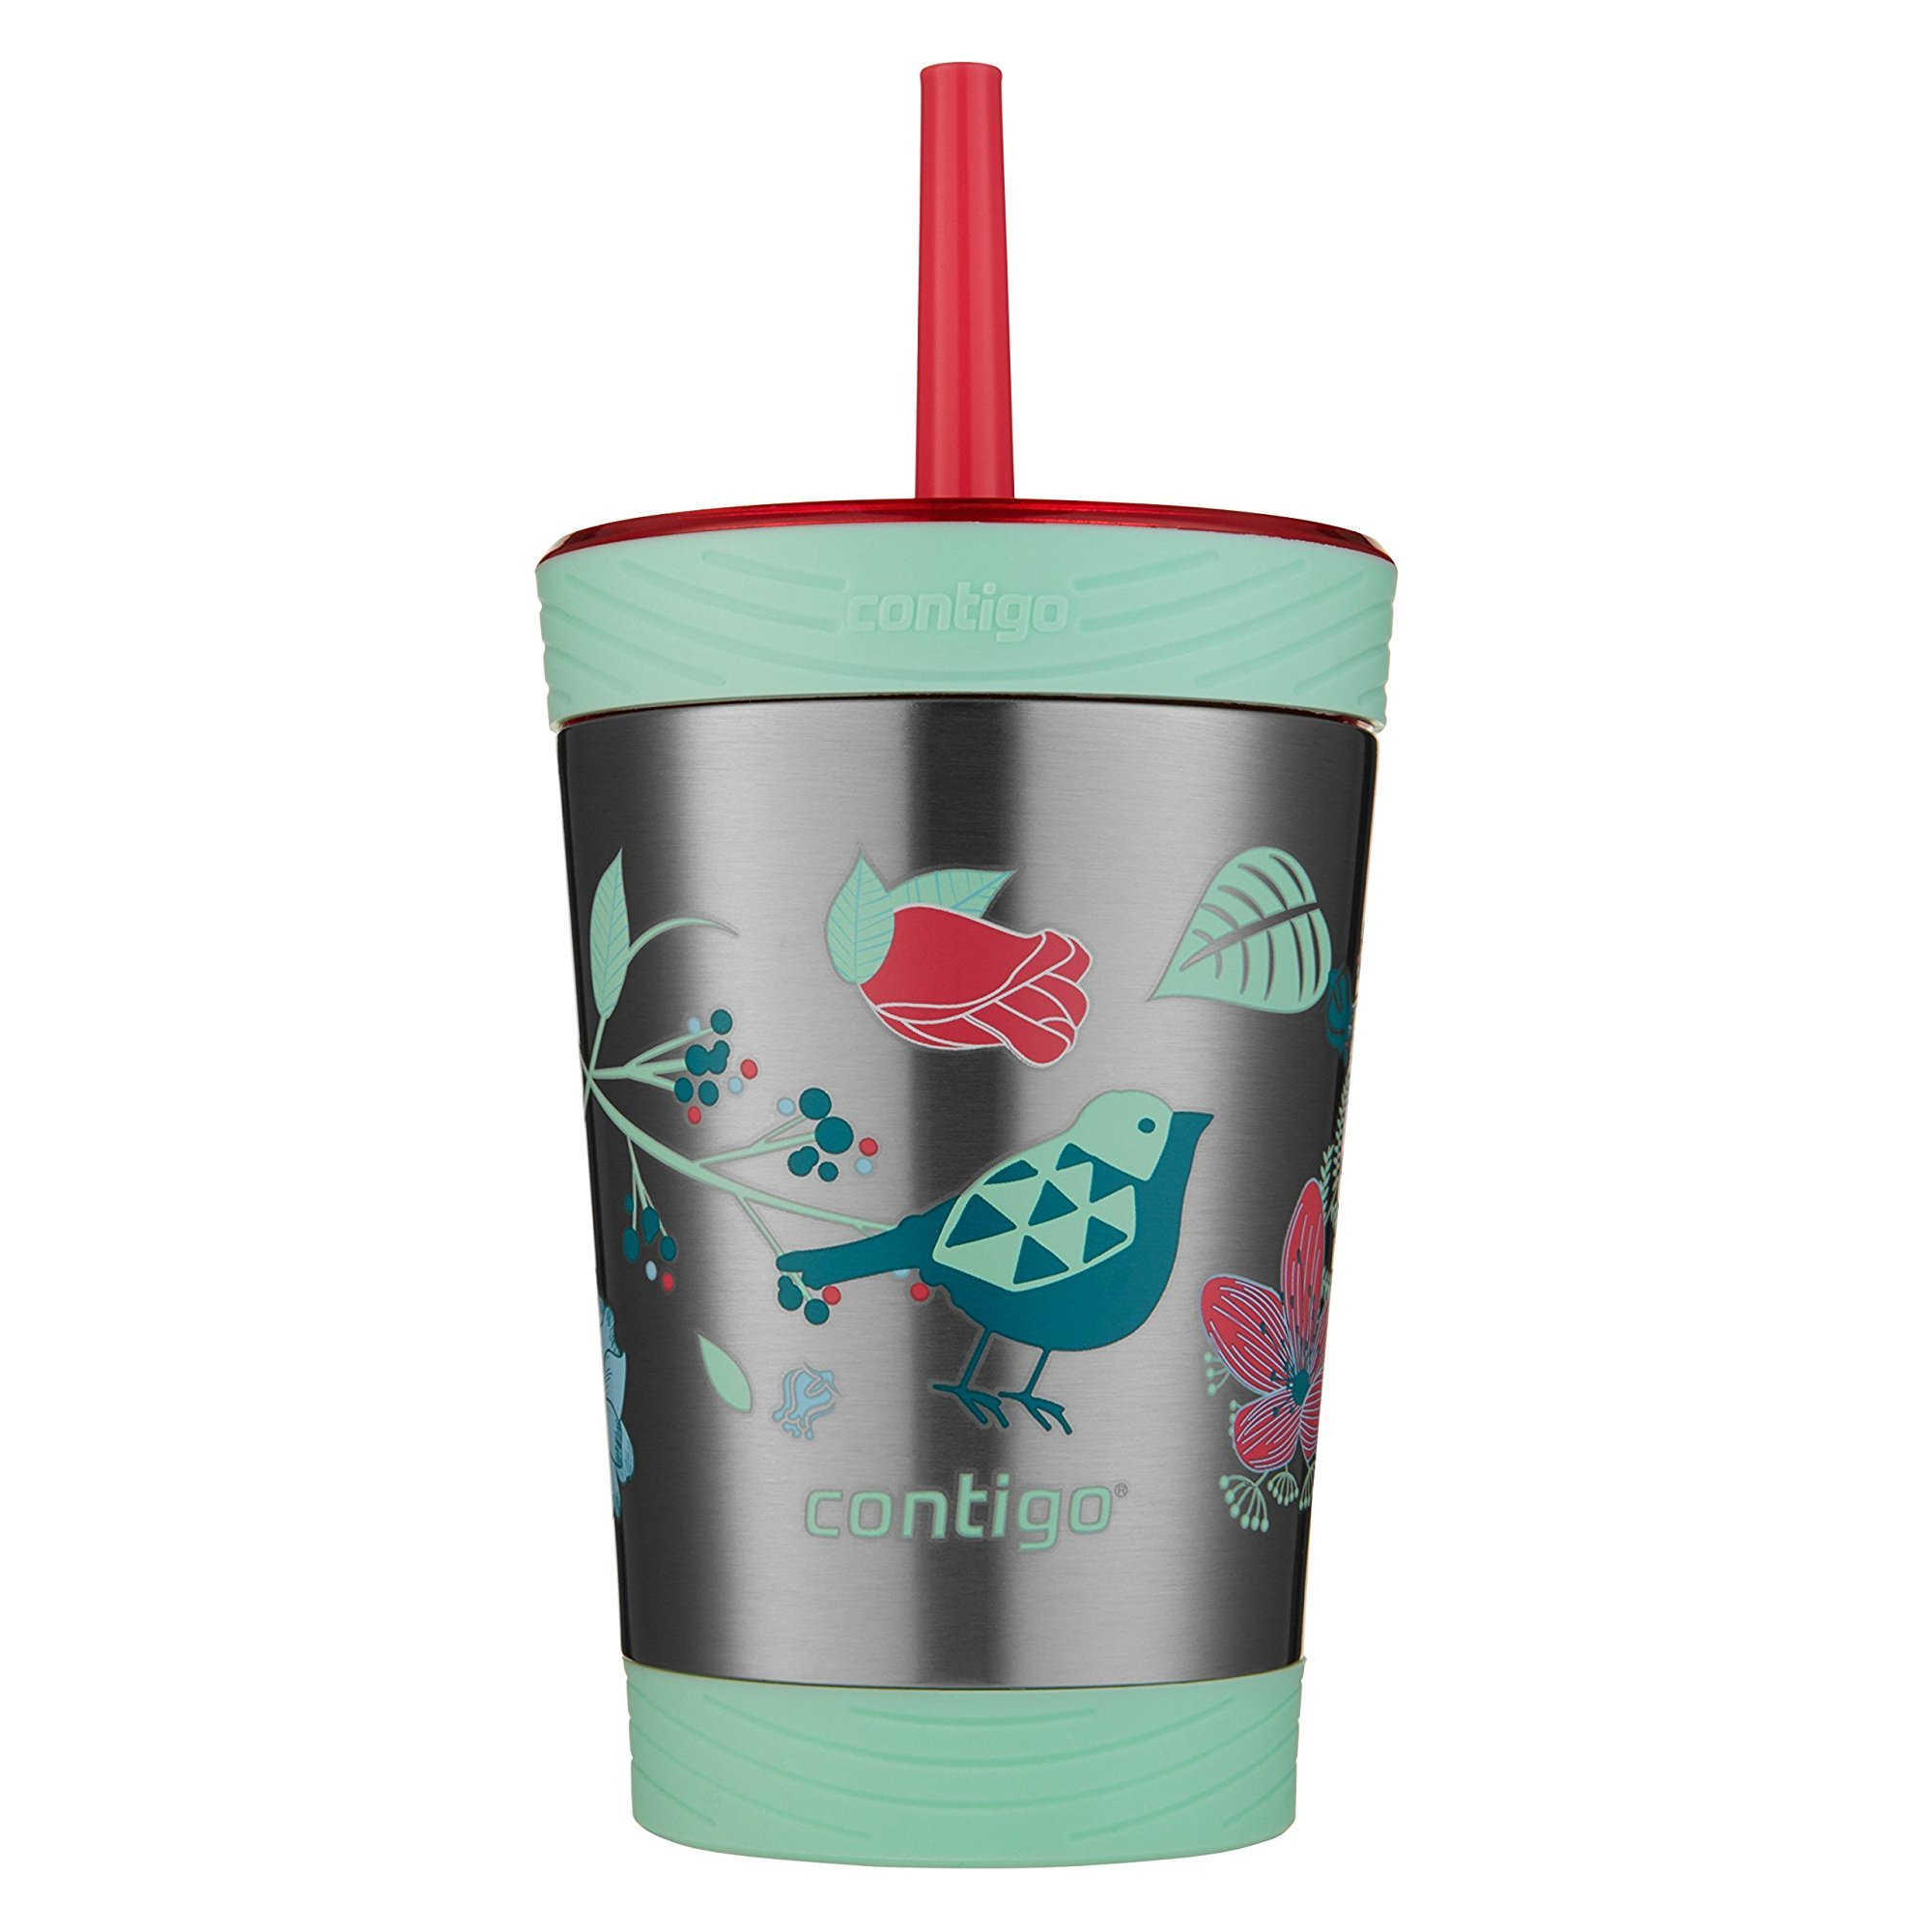 Contigo THERMALOCK Spill-Proof Kids Stainless Steel Tumbler with Straw, 12 oz, Sprinkles with Birds & Flowers